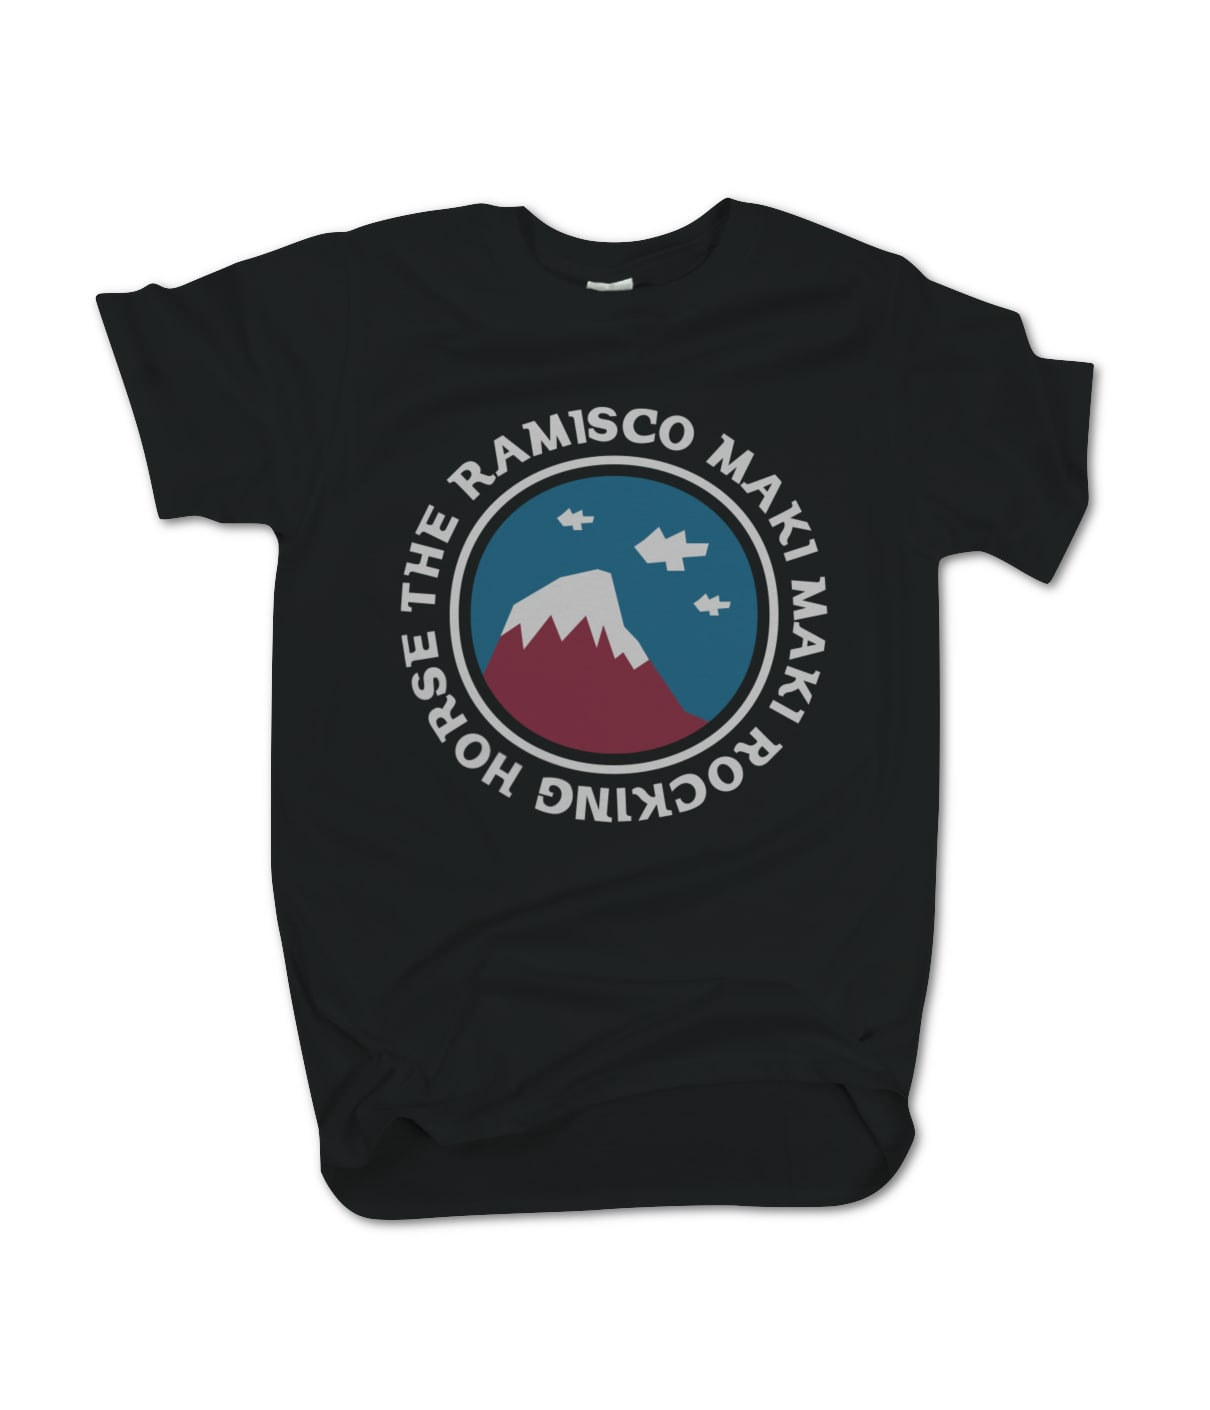 The ramisco maki maki rocking horse mountain tee sk8aha